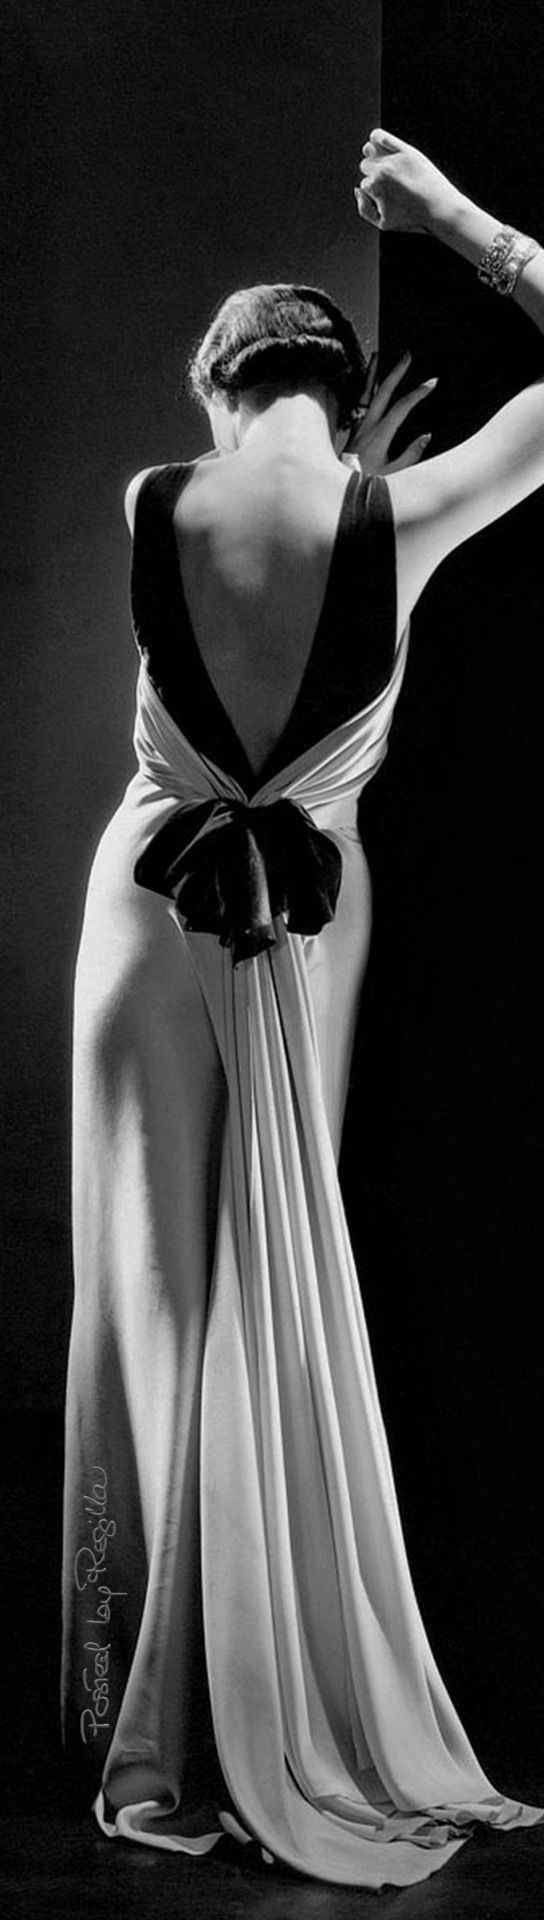 Regilla ⚜ Toto Koopman shot by George Hoyningen-Huene for Vogue 1933